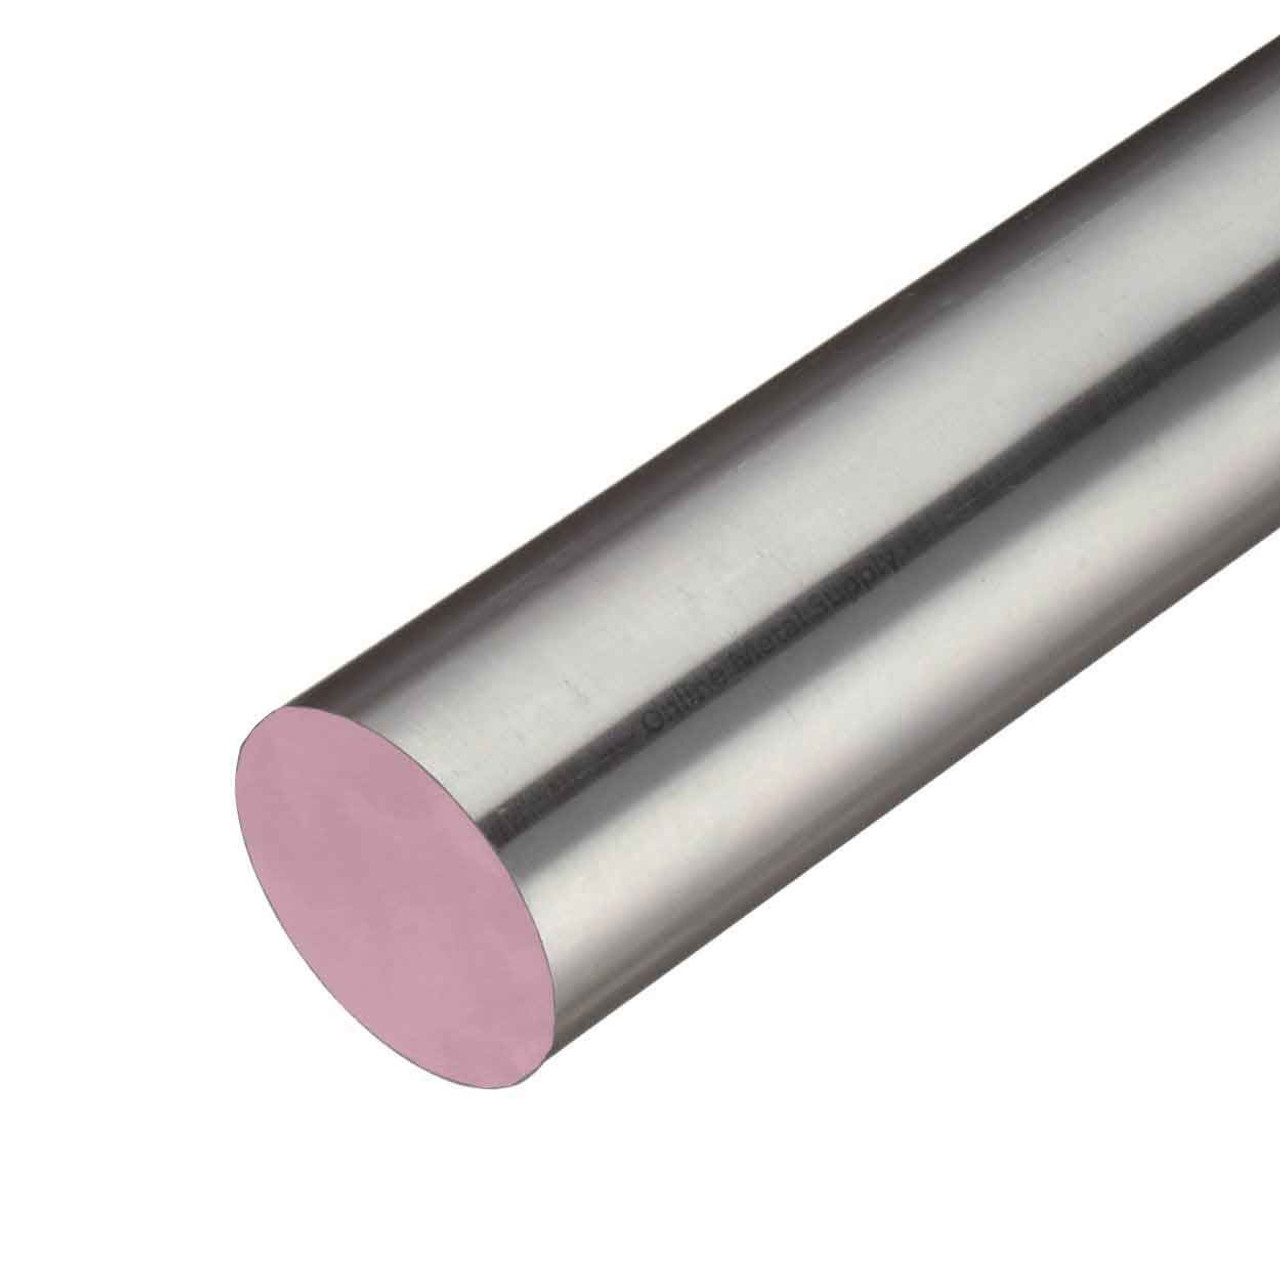 0.937 (15/16 inch) x 36 inches, 303 TGP Stainless Steel Round Rod